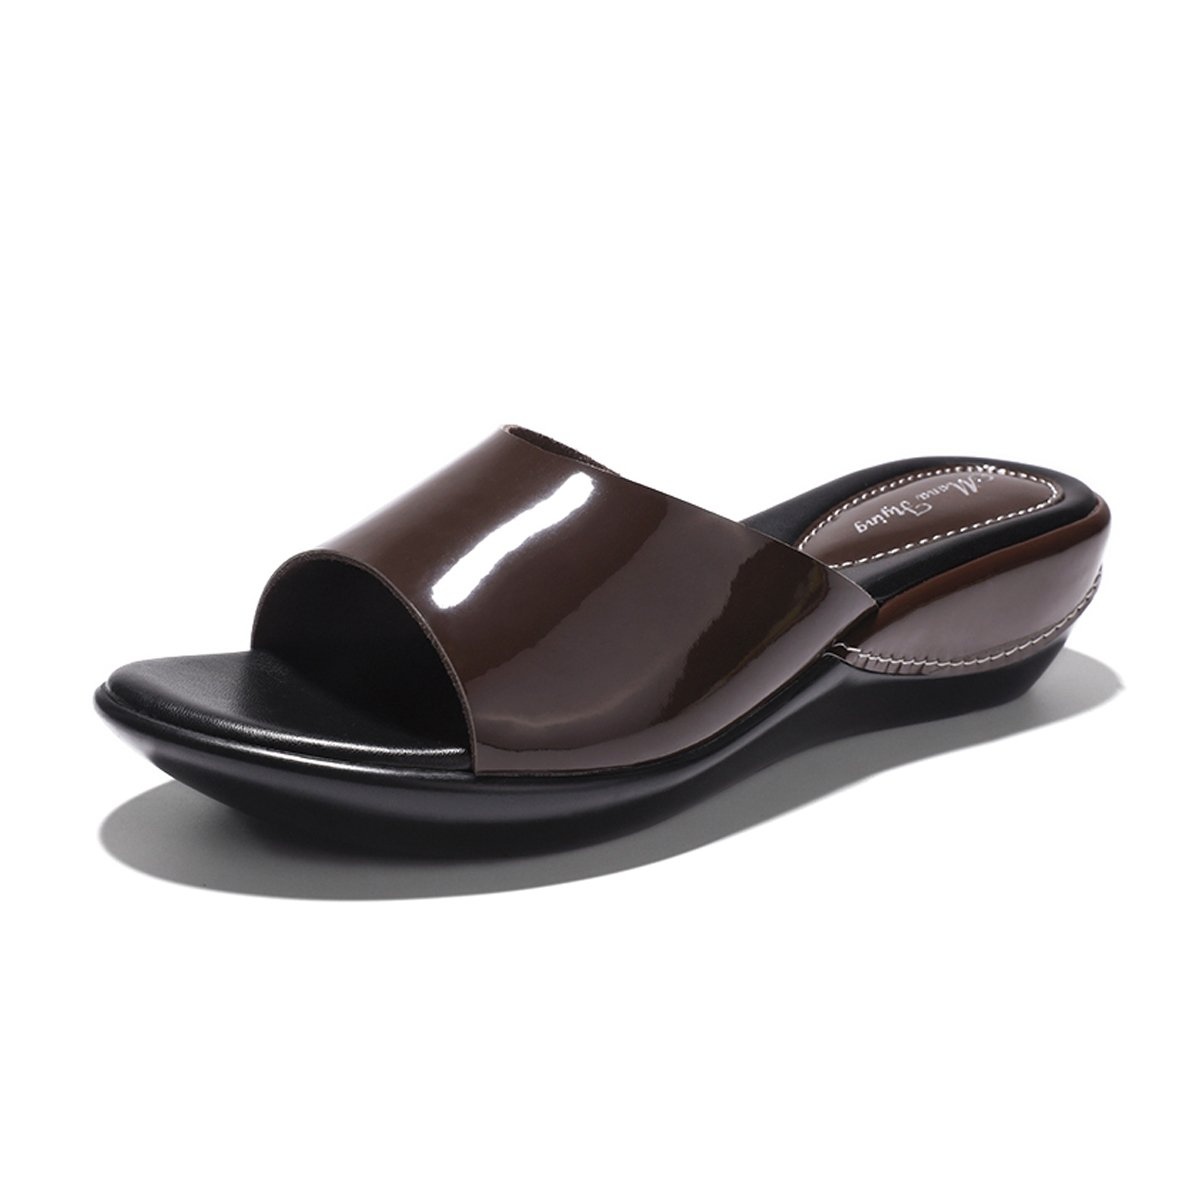 Mona Flying Women's Genuine Leather Platform Wedge Slide Sandals for Women Slip On Sandals B074L6NM3R 6.5 M US|Coffee